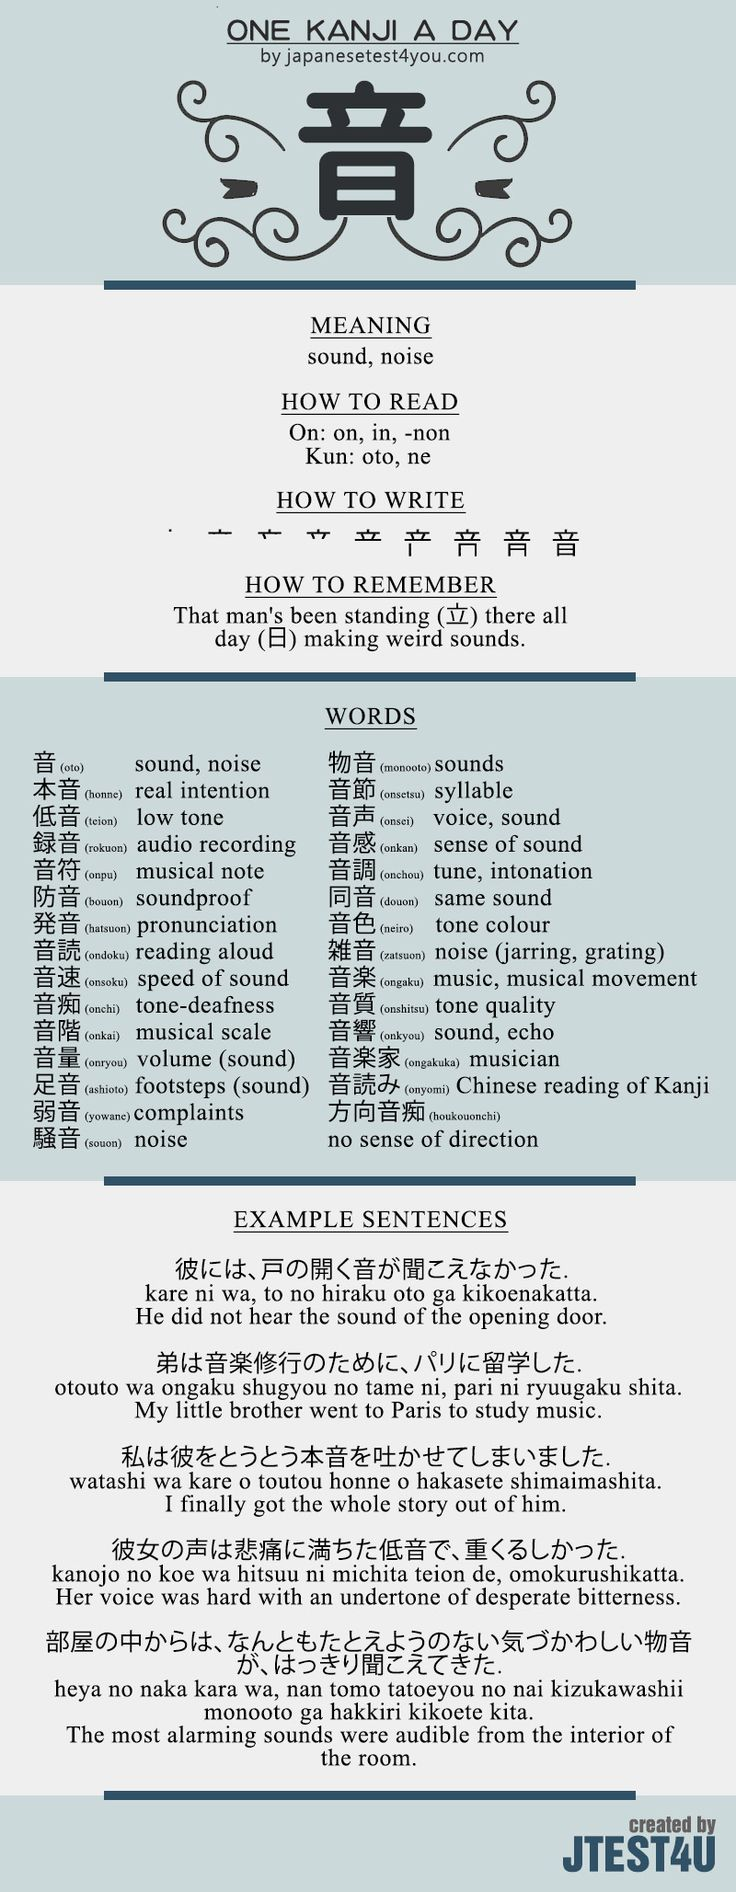 Learn one Kanji a day with infographic - 音 (on): http://japanesetest4you.com/learn-one-kanji-a-day-with-infographic-%e9%9f%b3-on/